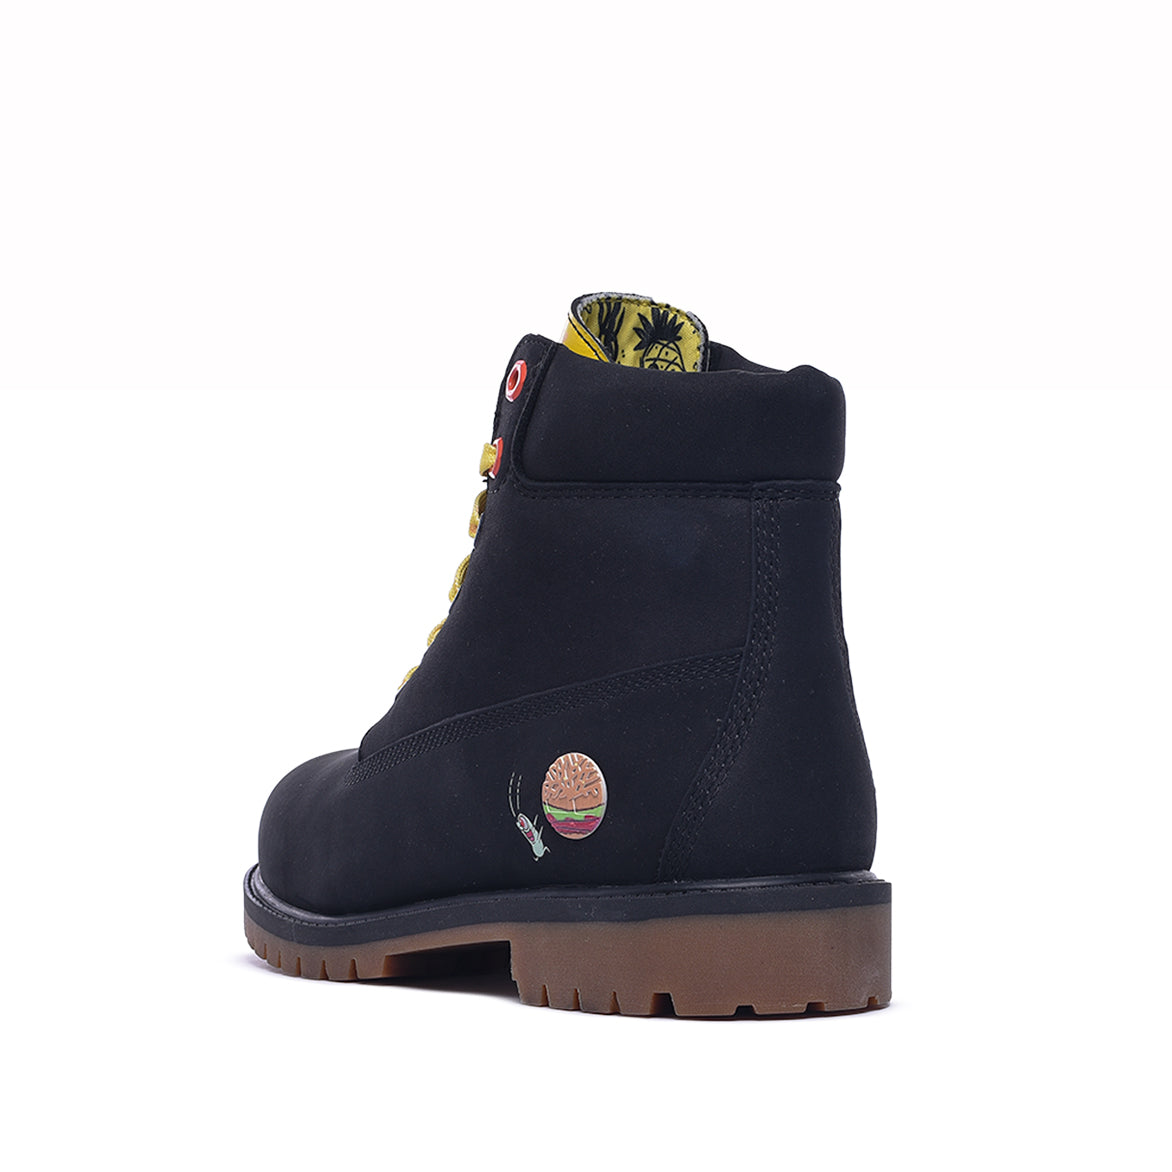 "SPONGEBOB x TIMBERLAND 6"" PRM BOOT (GS) - BLACK"